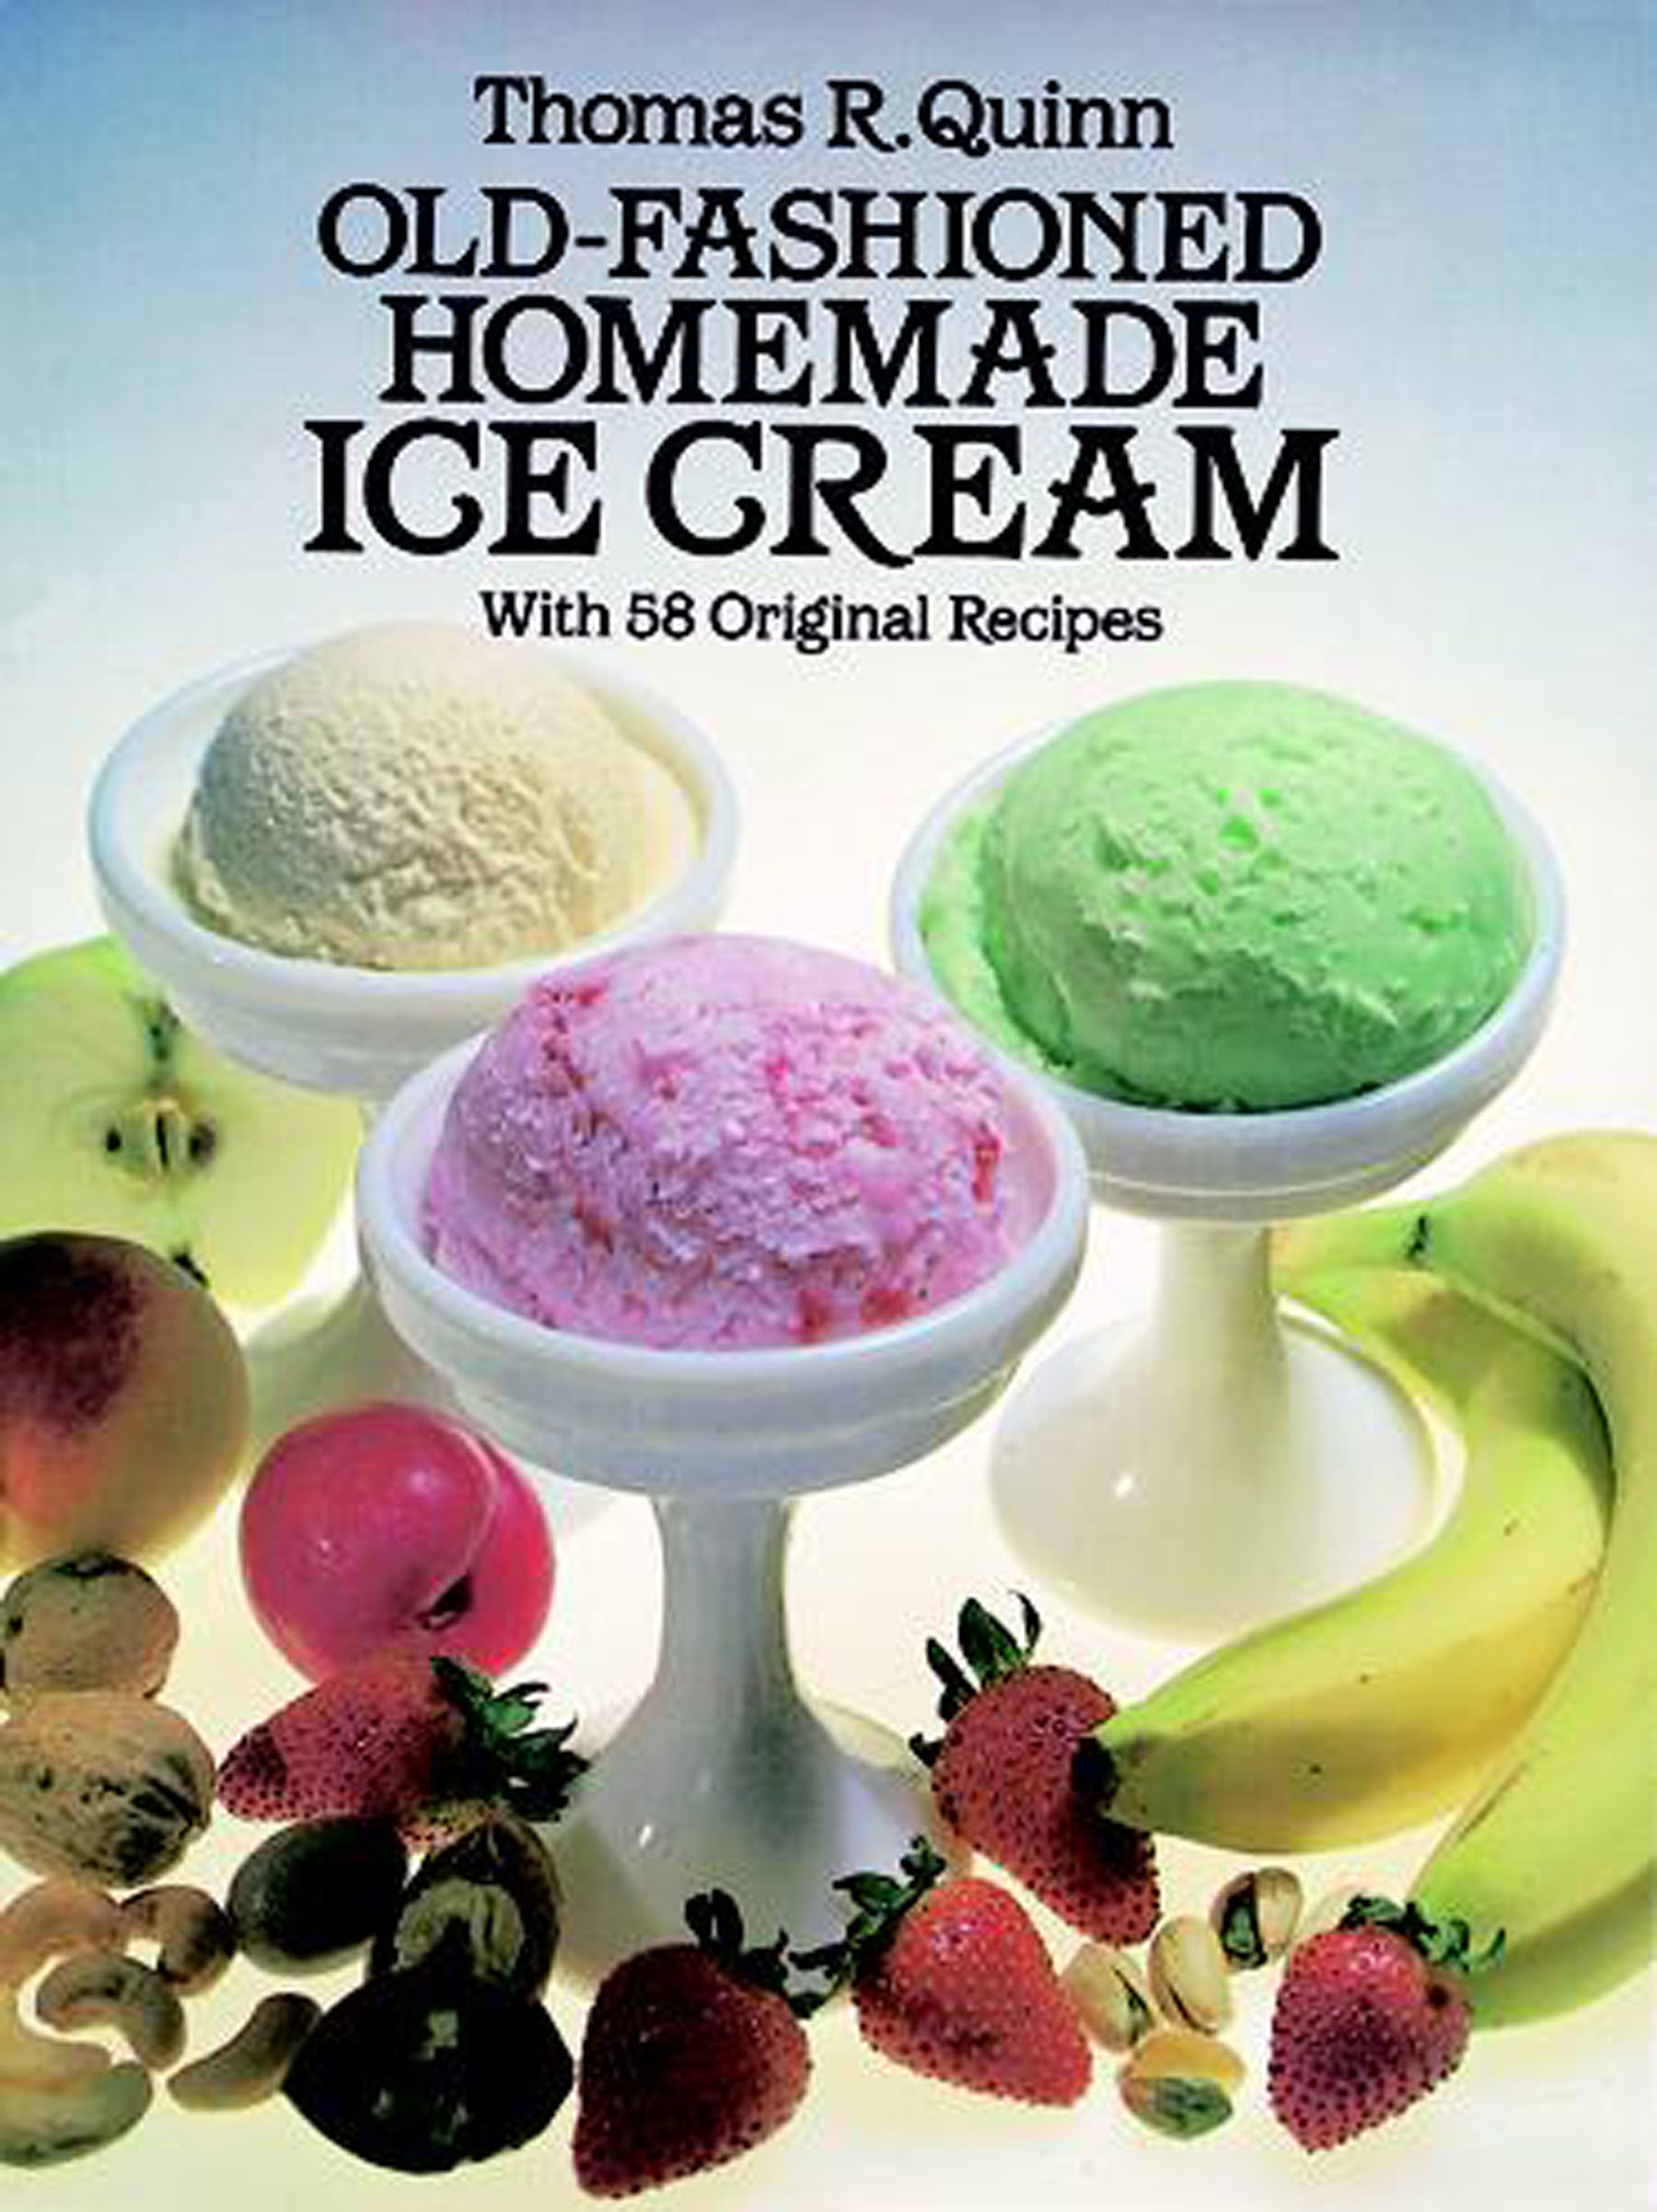 Old-Fashioned Homemade Ice Cream